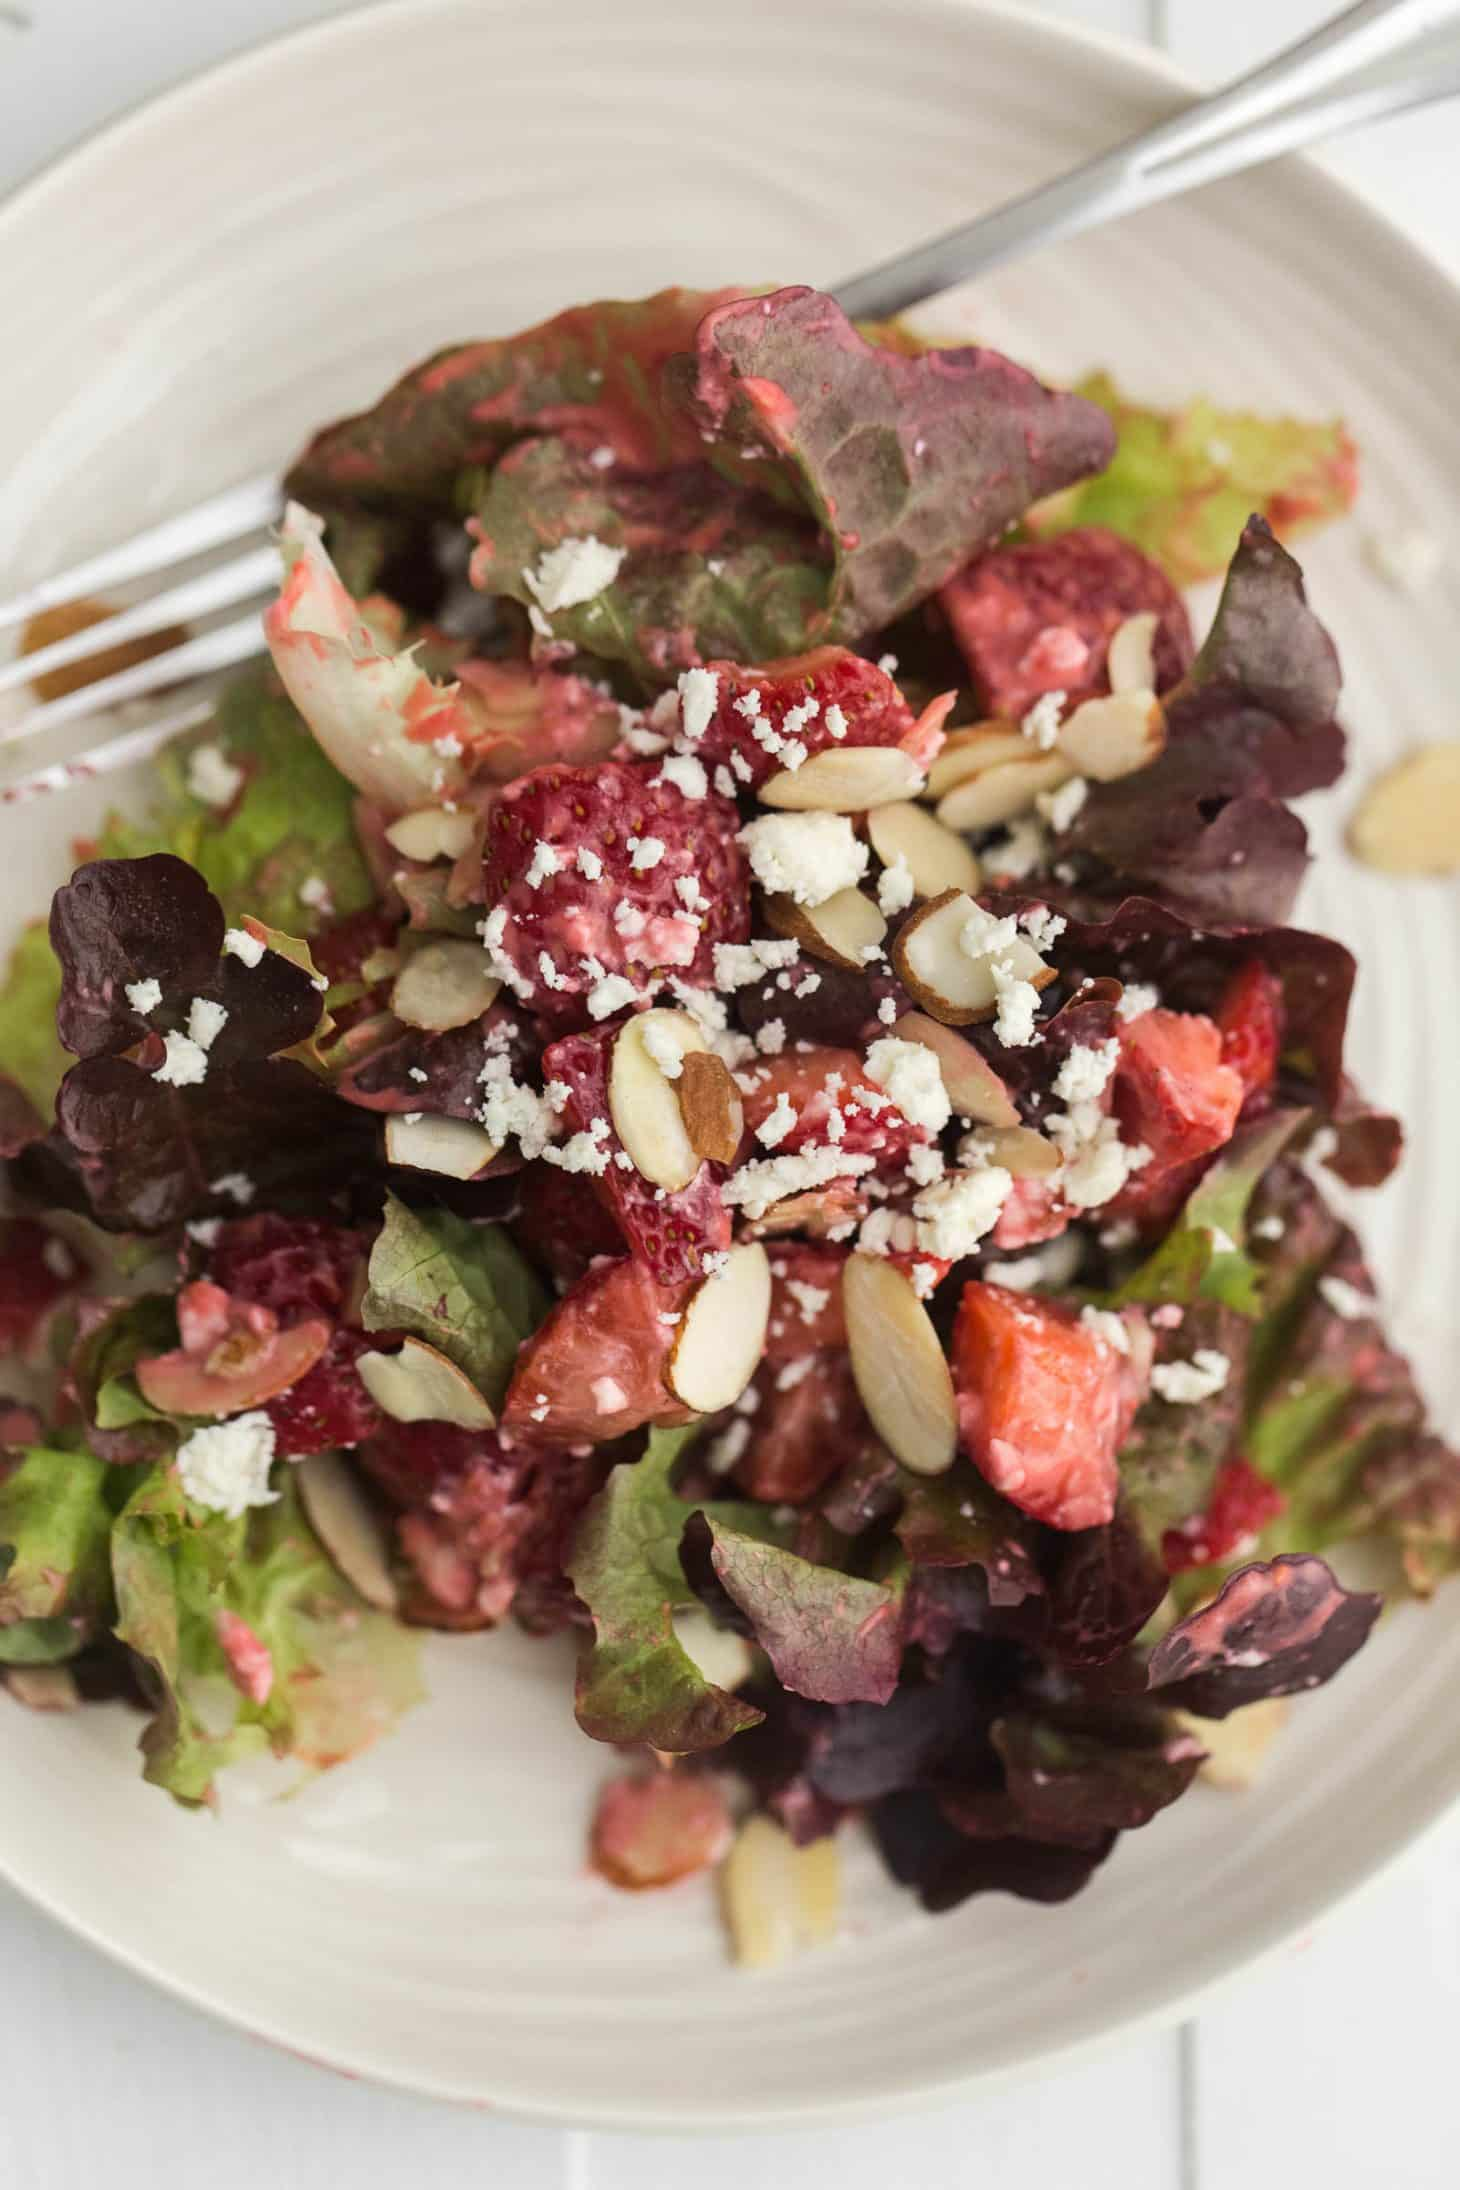 Strawberry Salad with Raspberry Vinaigrette and Almonds